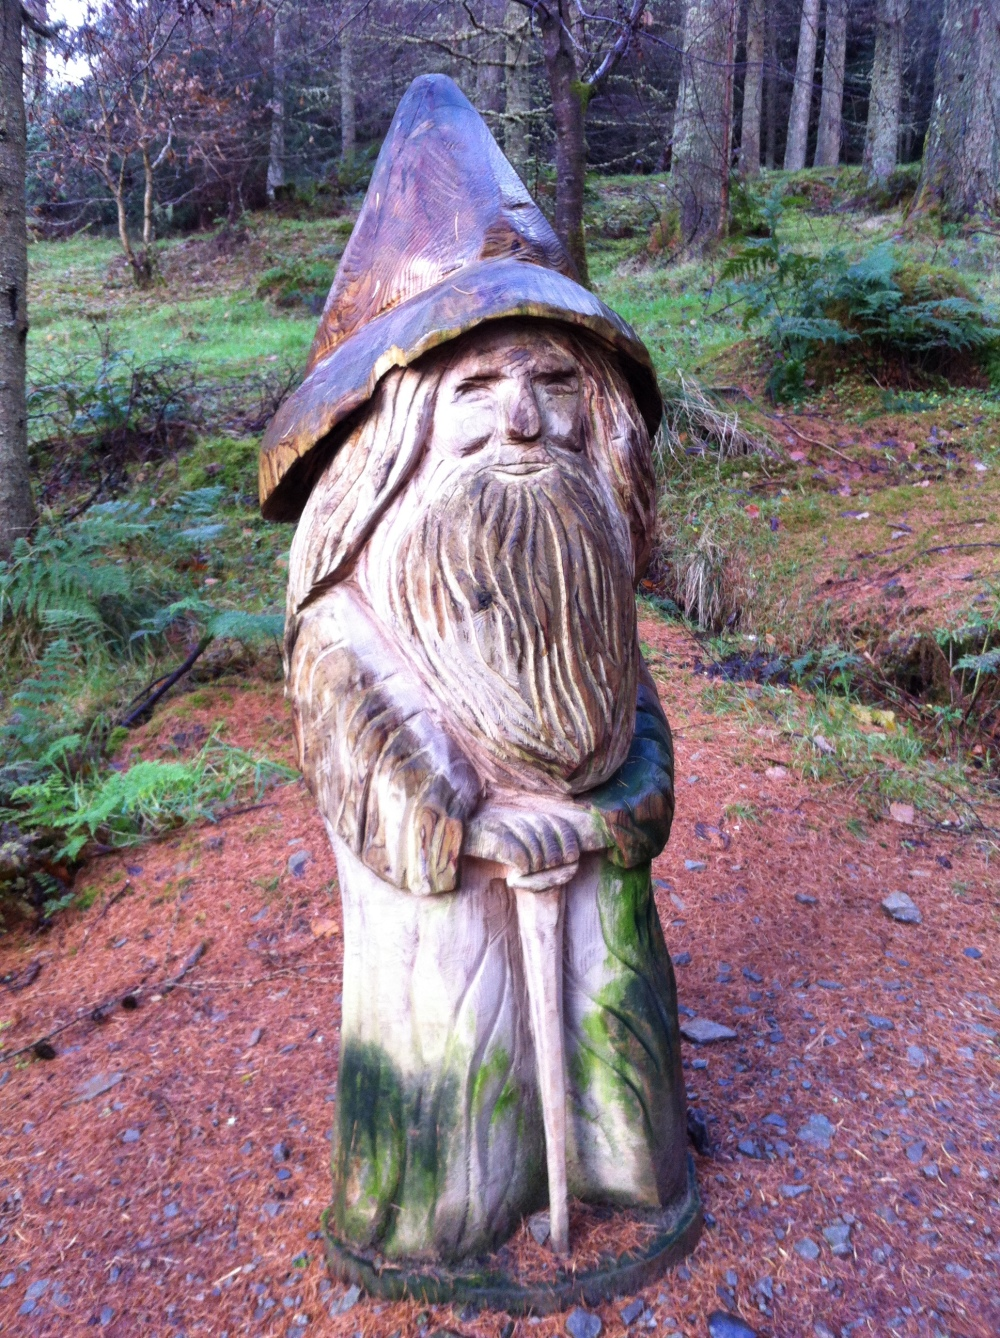 Wise old man of the forest